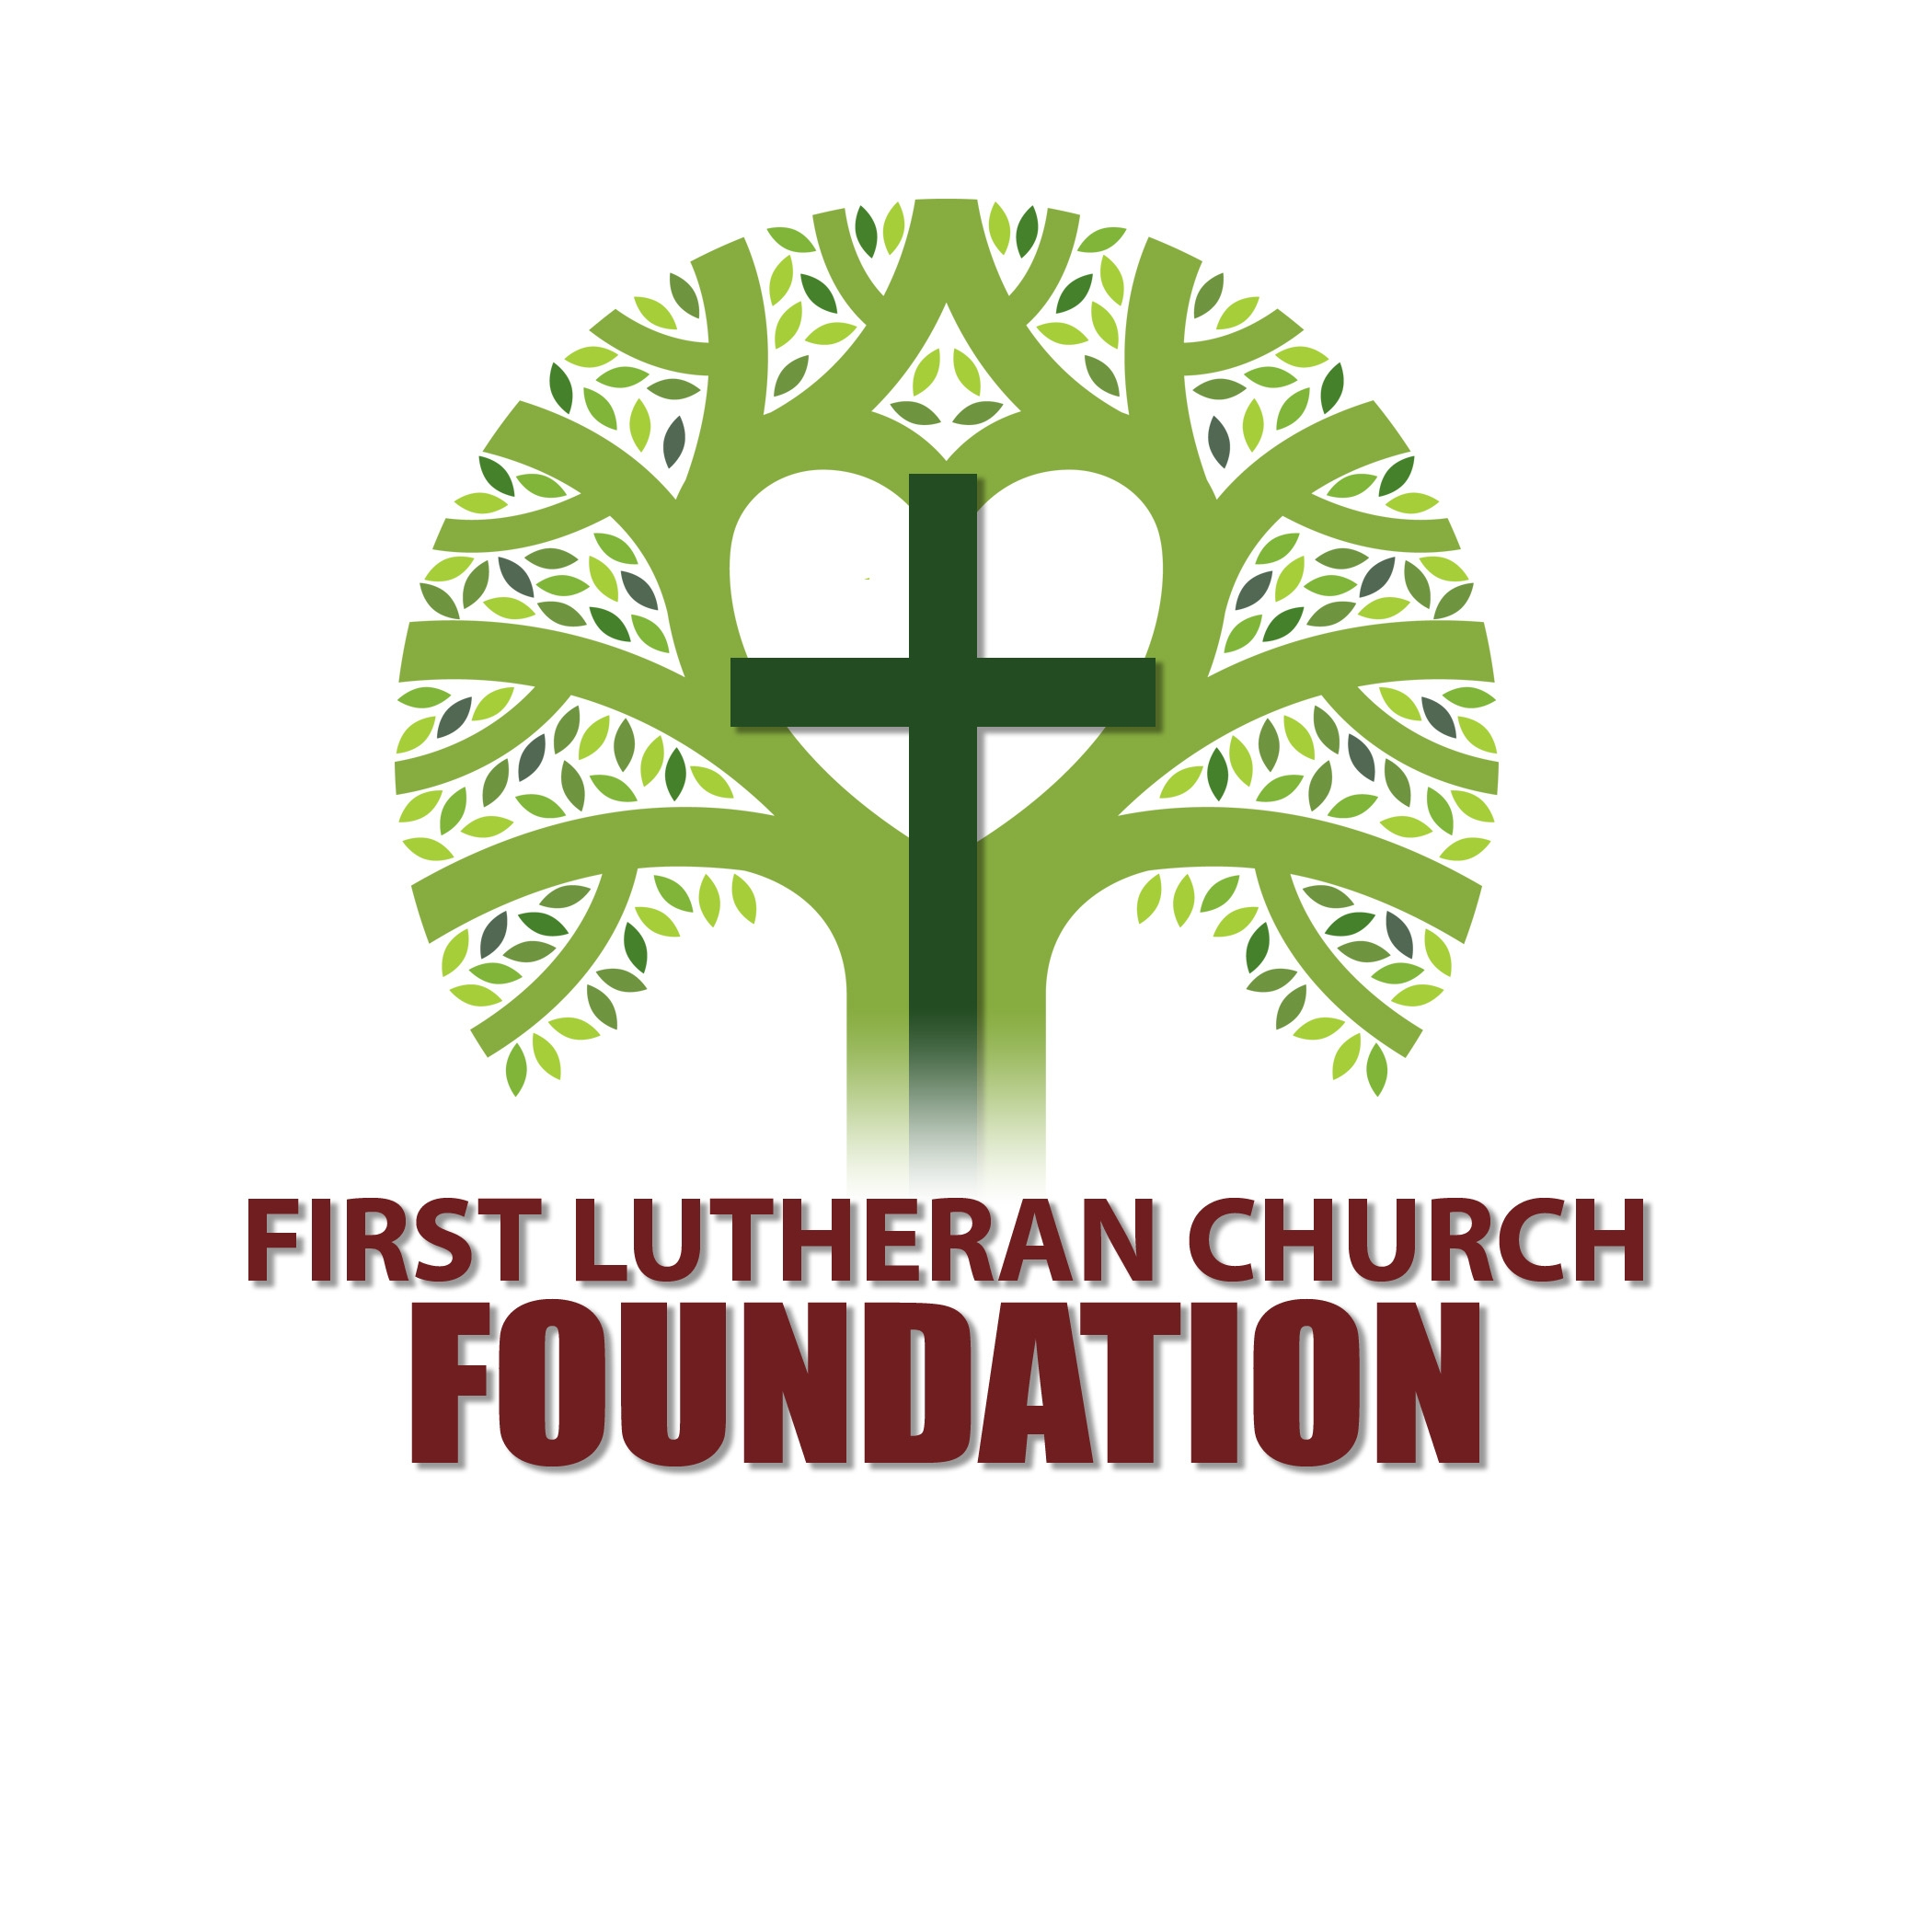 FLC Foundation logo.JPG